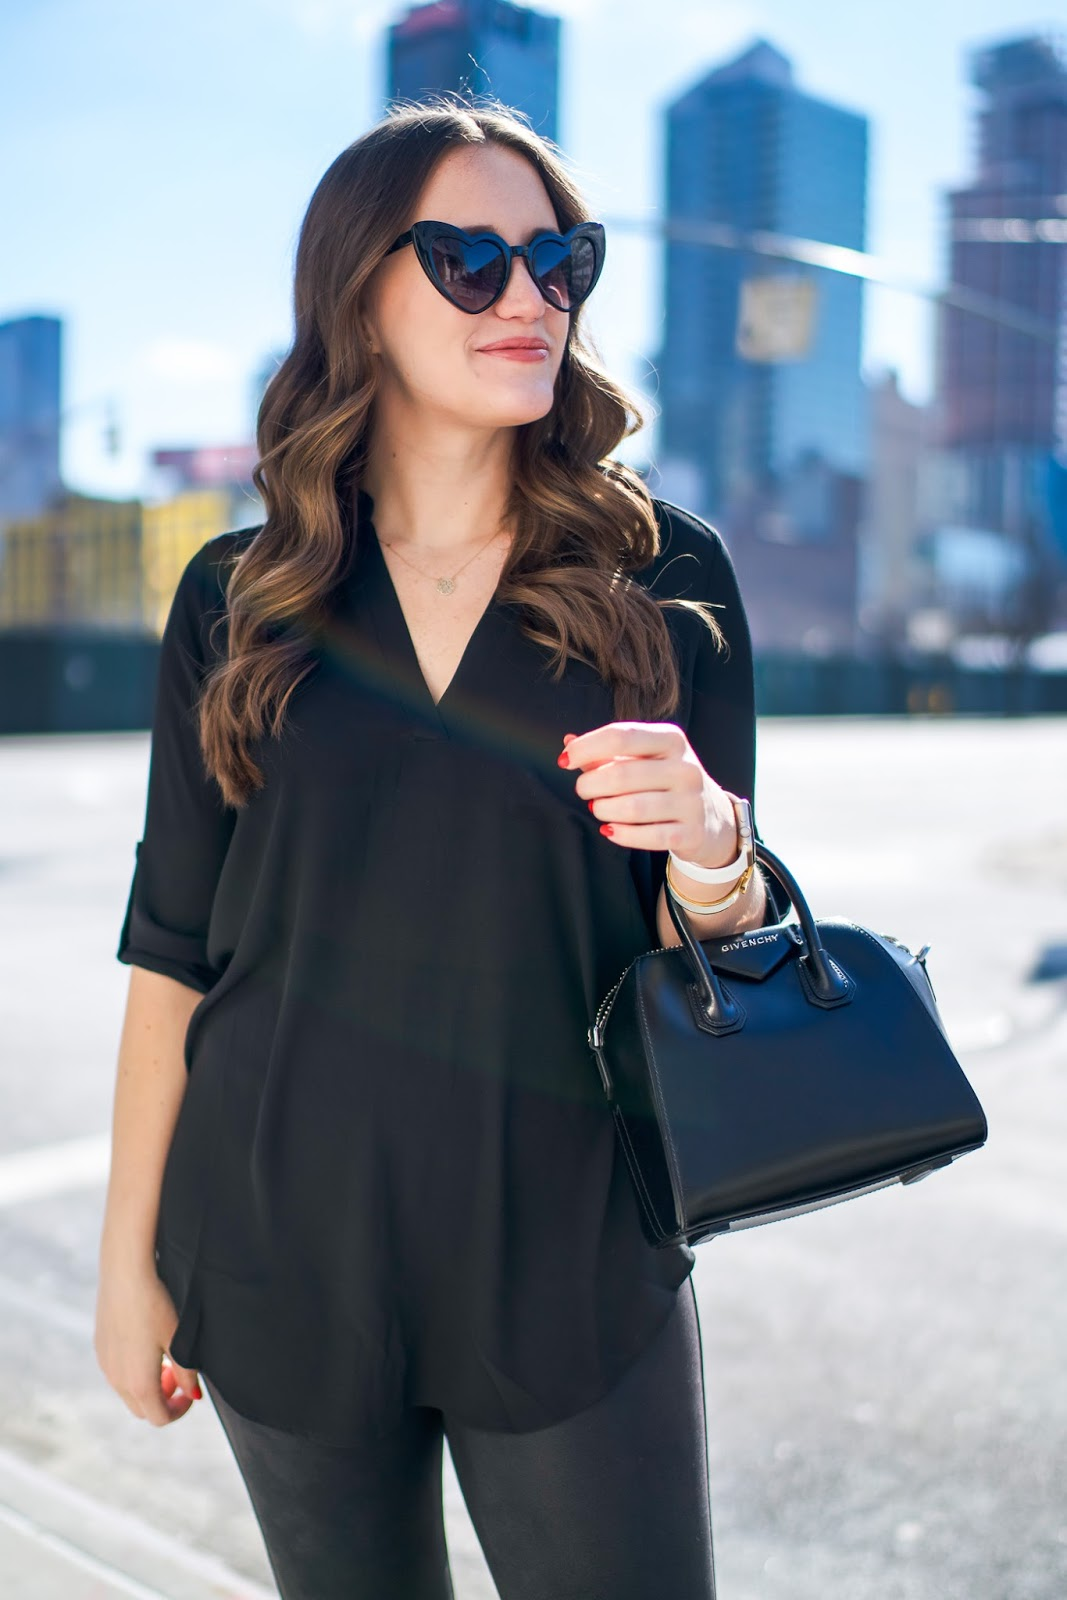 My Favorite Transition to Spring Fashion by popular New York fashion blogger Covering the Bases